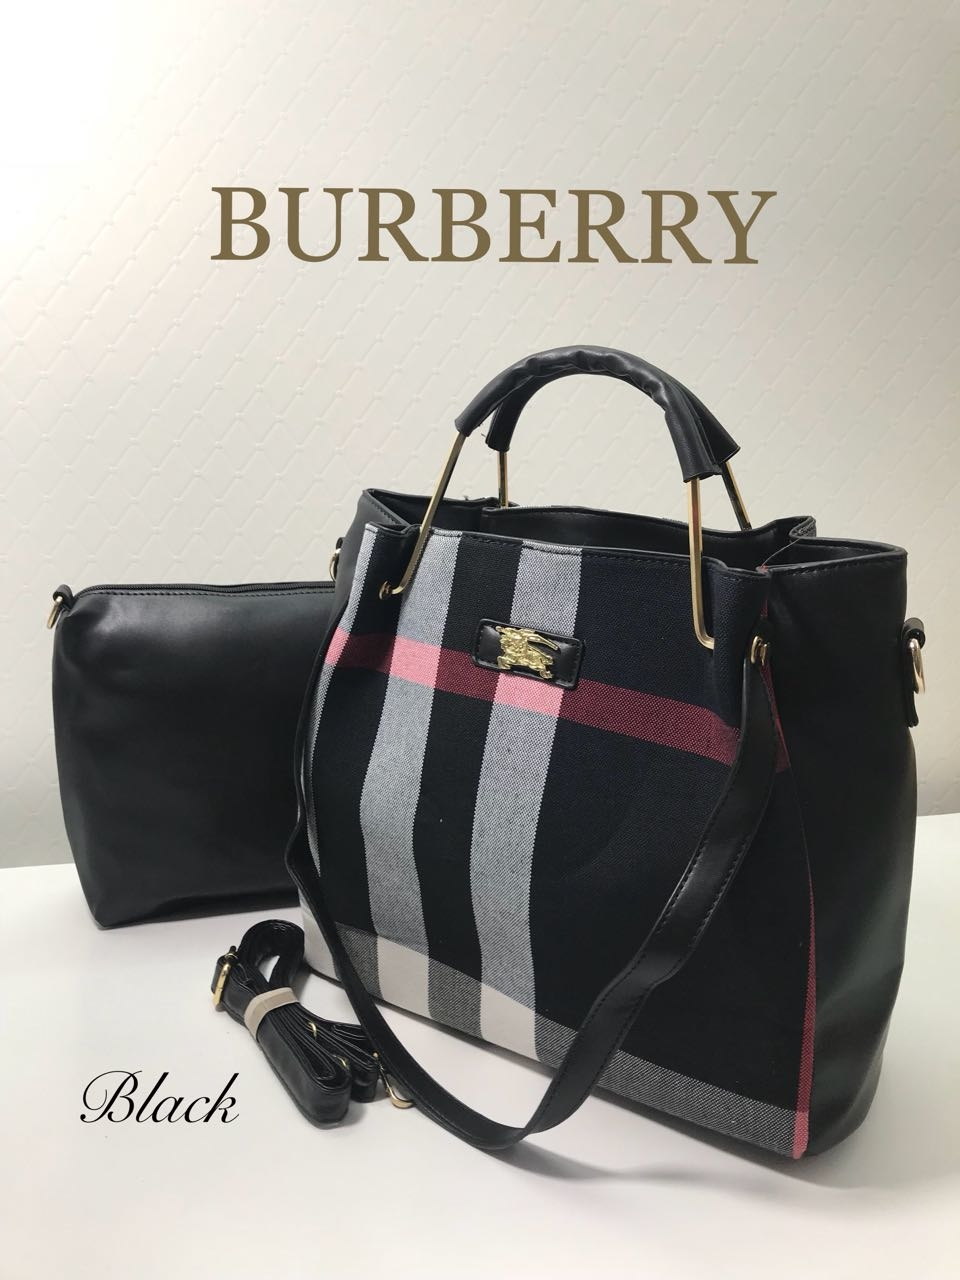 *🐎BURBERRY🐎* 2 piece combo set😍 IMPORTED Classy carry sober wear *❣Price 1099 +$ only❣*